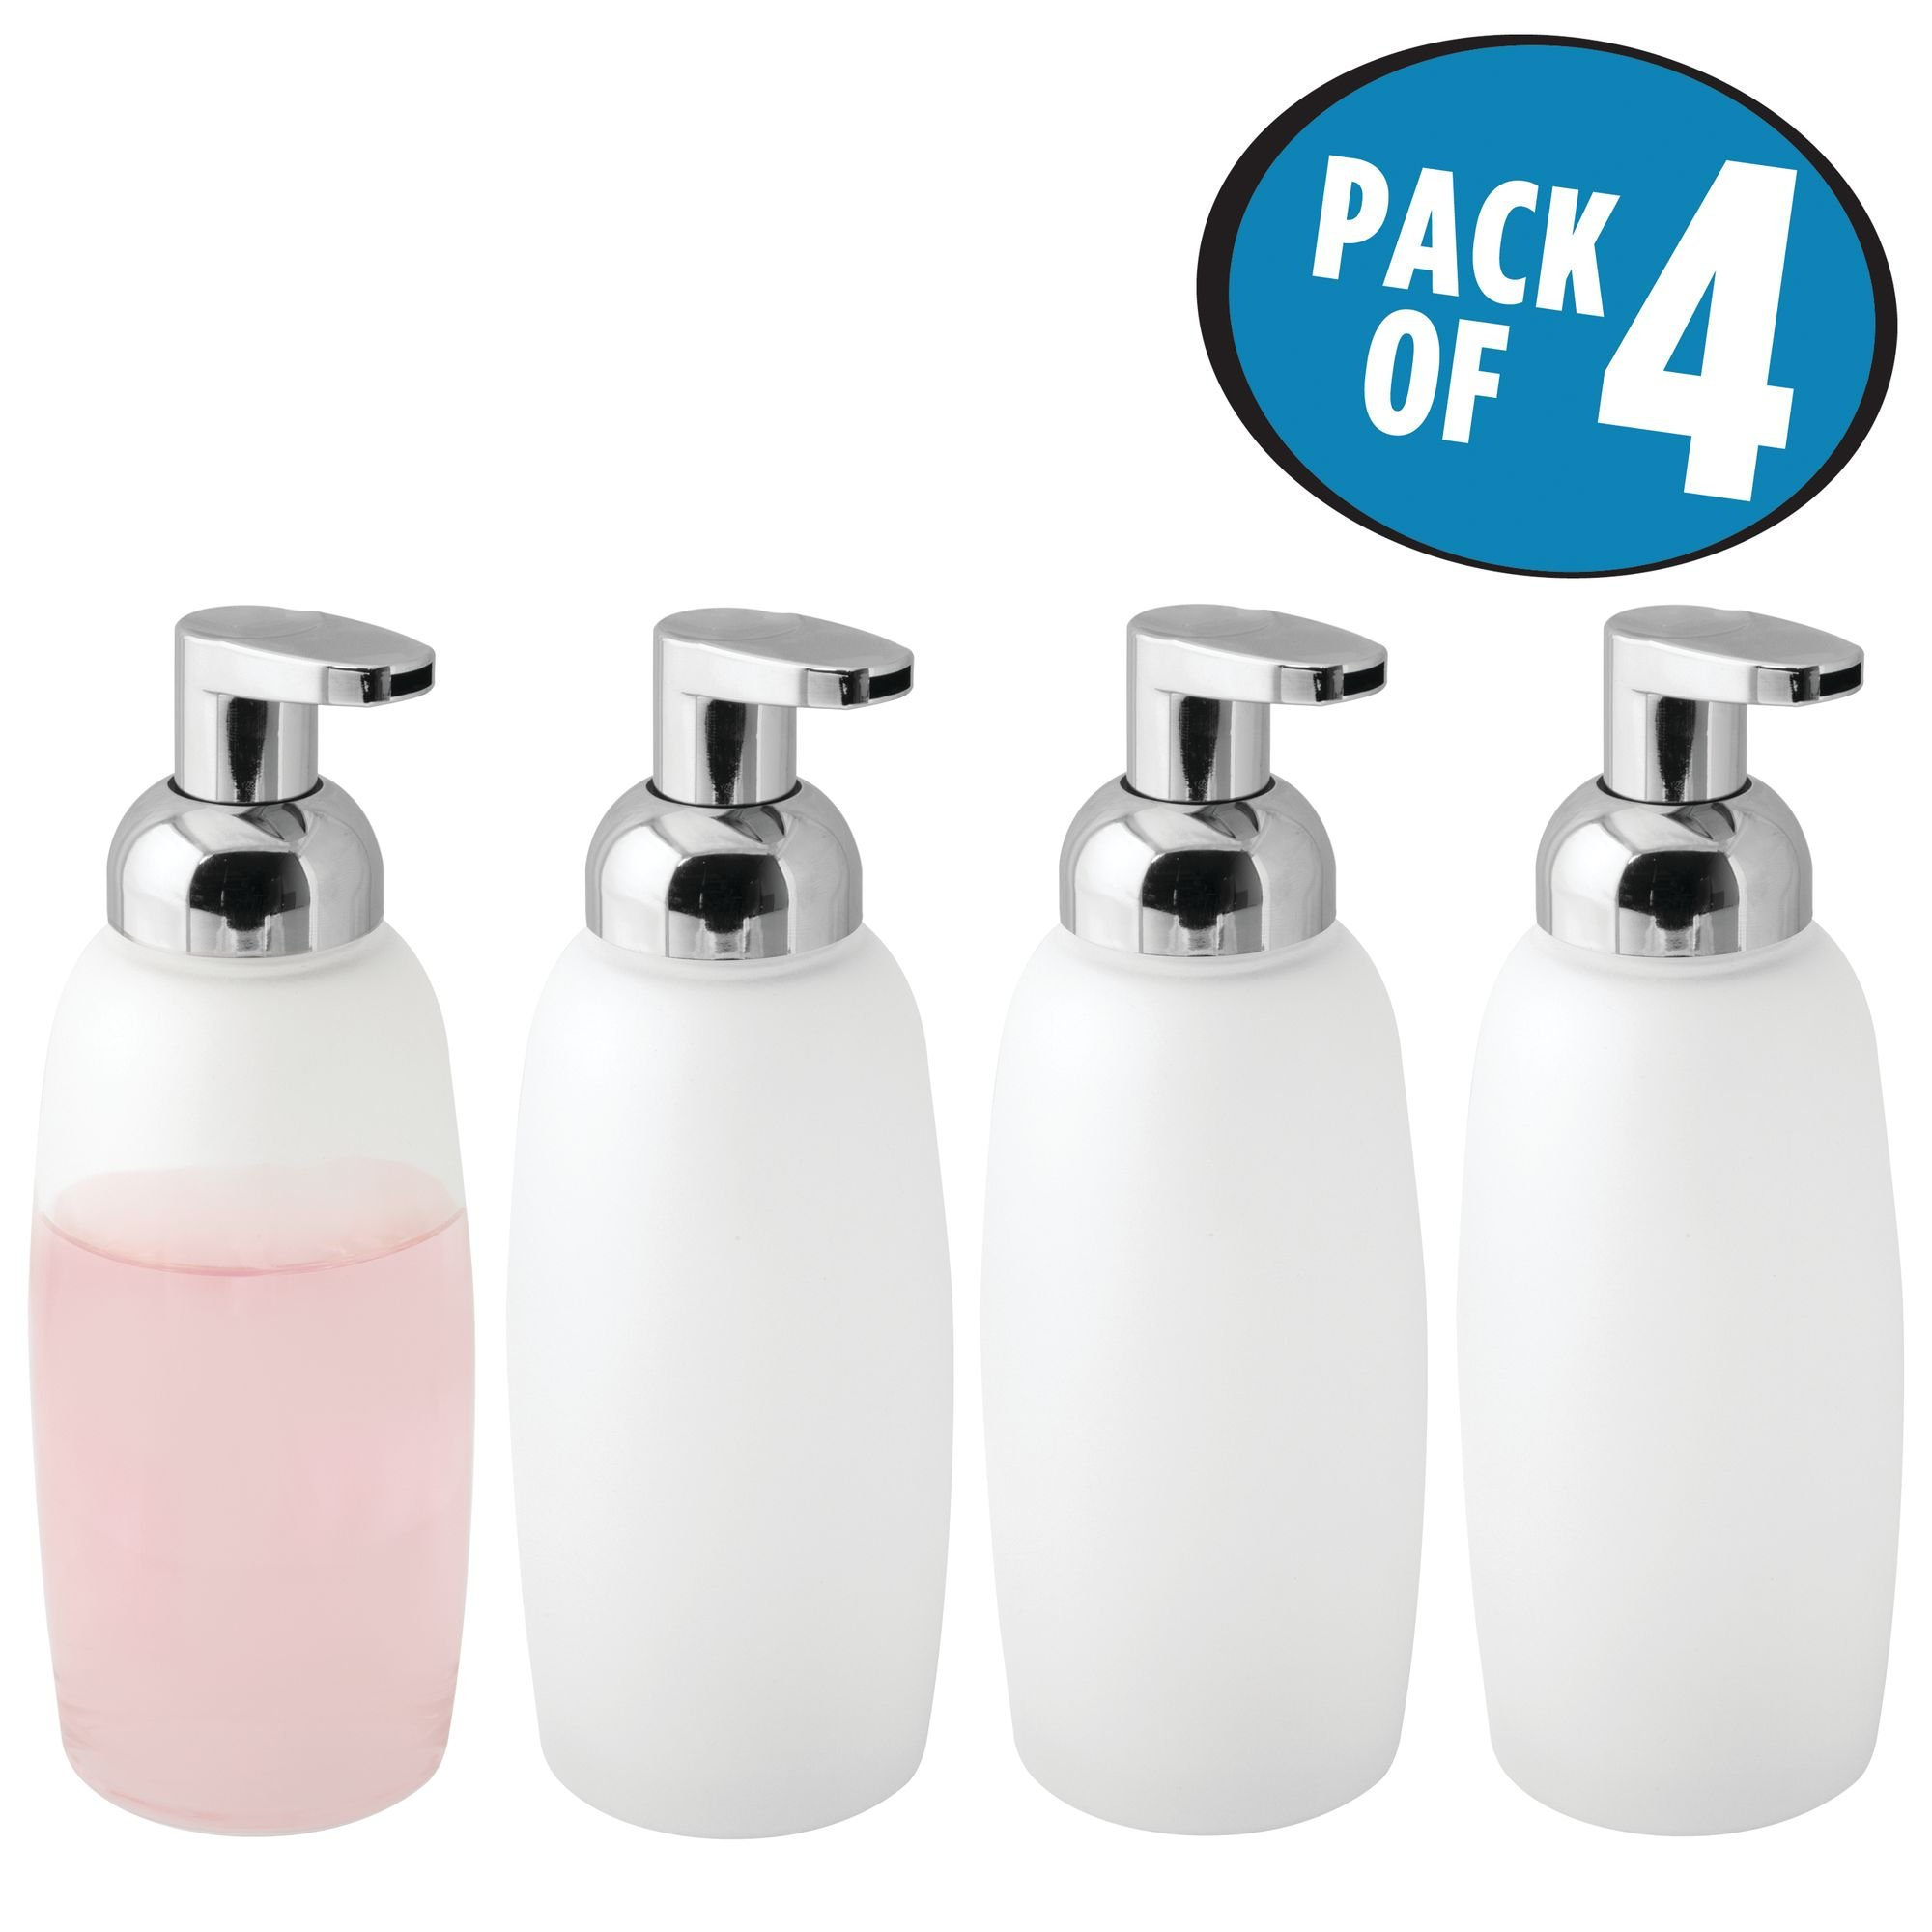 mDesign Modern Glass Refillable Foaming Soap Dispenser Pump Bottle for Bathroom Vanities or Kitchen Sink, Countertops - Pack of 4, Frost with Chrome Pump Head by mDesign